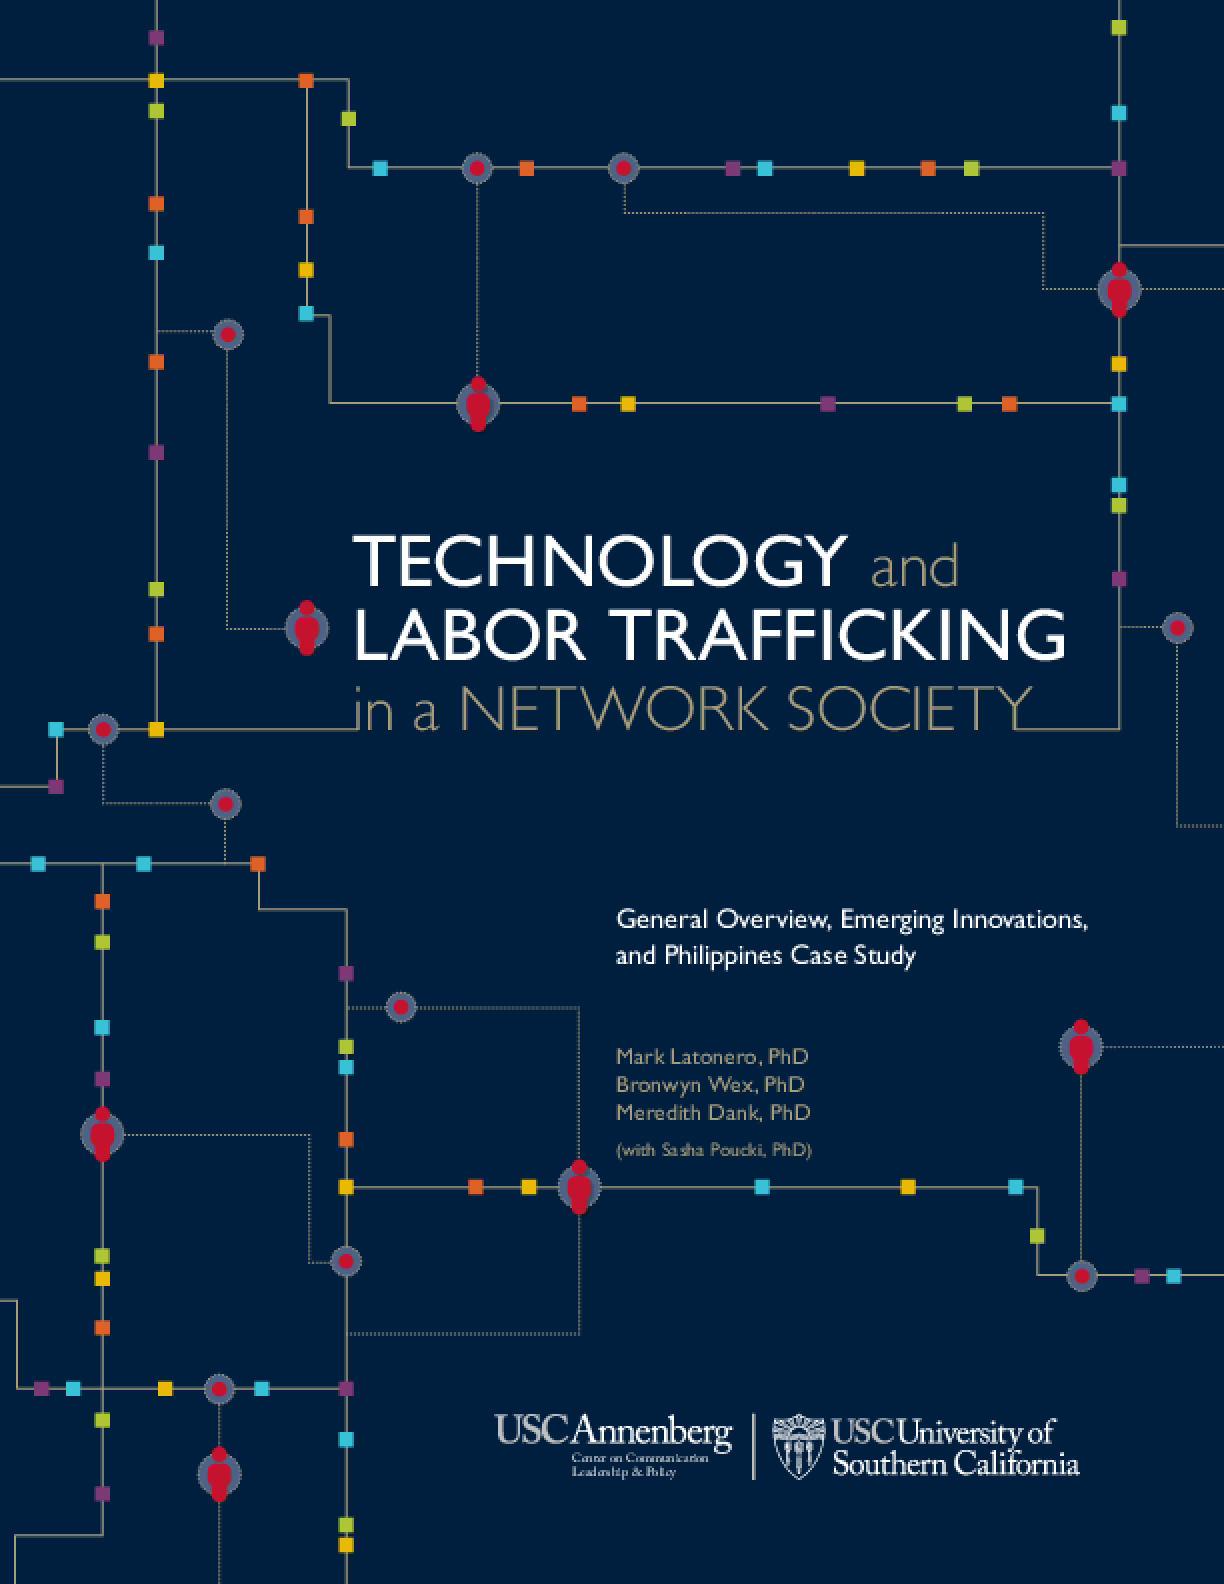 Technology and Labor Trafficking: in a Network Society - General Overview, Emerging Innovations, and Phillippines Case Study